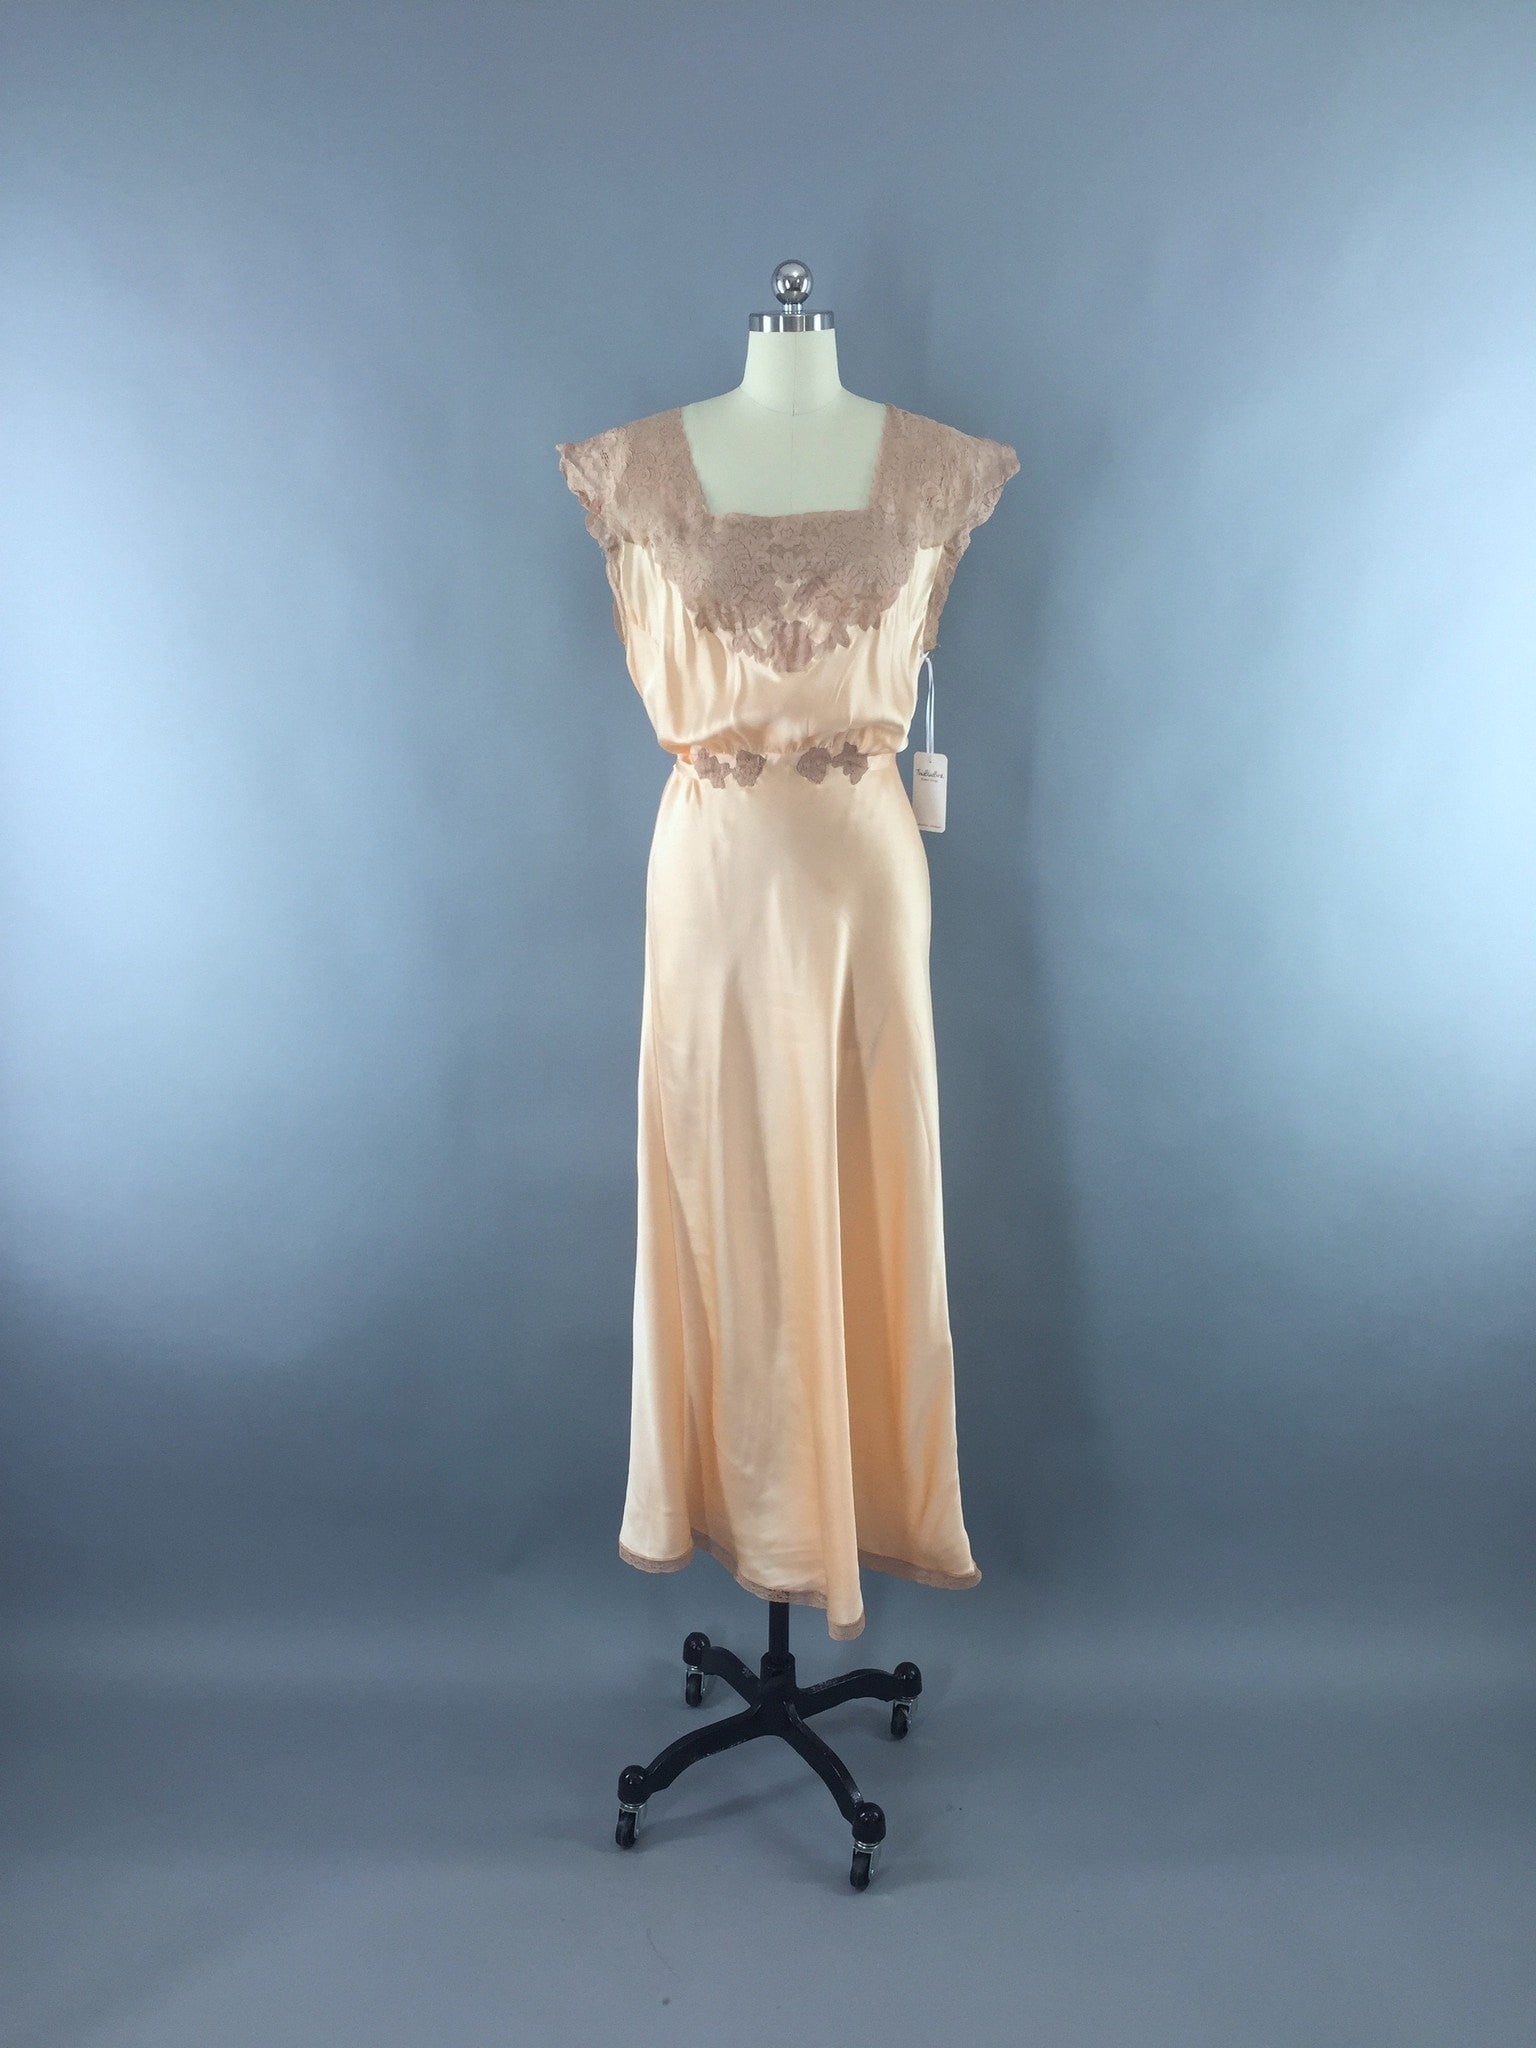 Vintage 1930s Silk Nightgown / Bias Cut Satin Lingerie ThisBlueBird